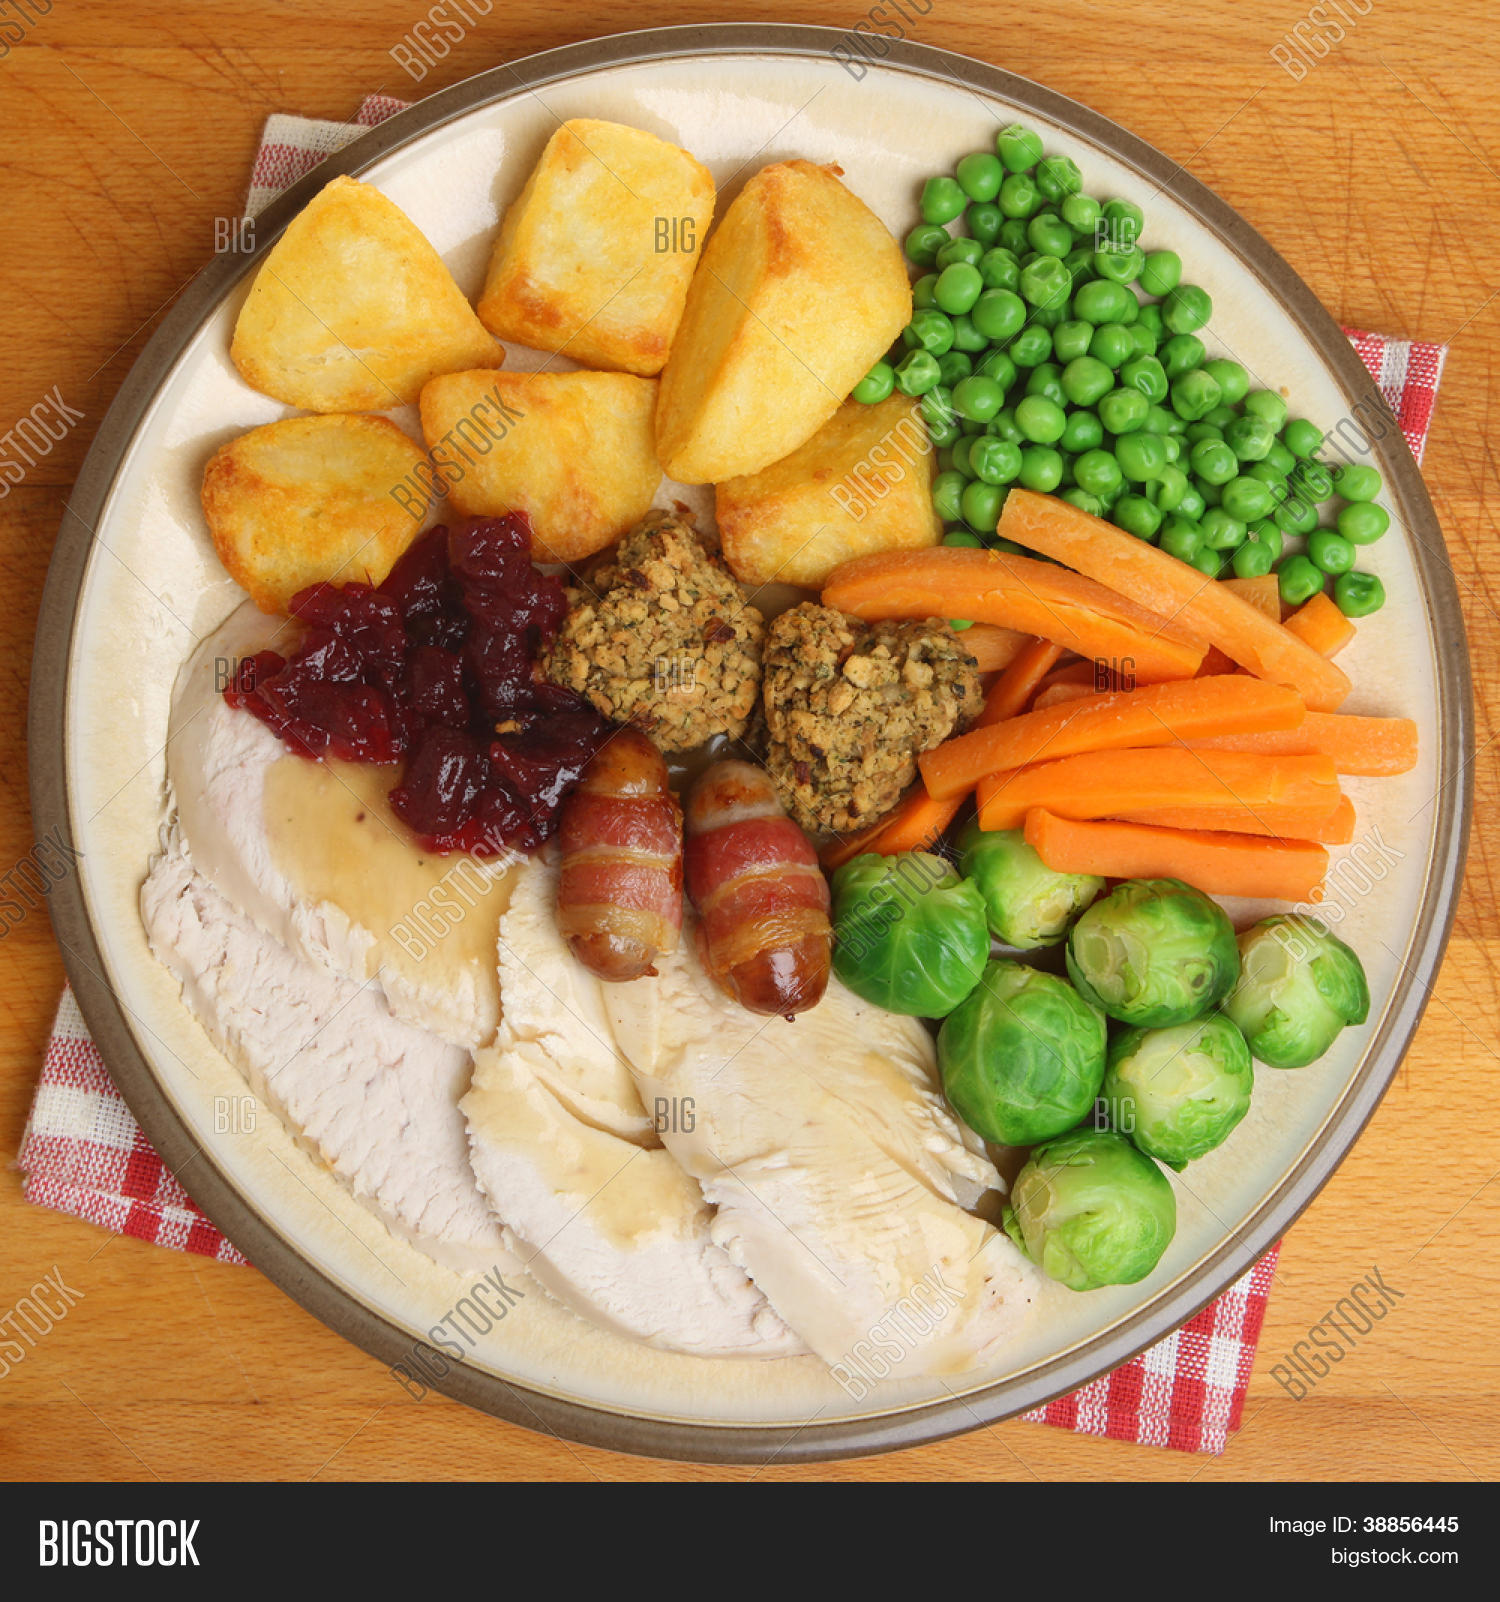 Roast Turkey Christmas Dinner Image & Photo | Bigstock